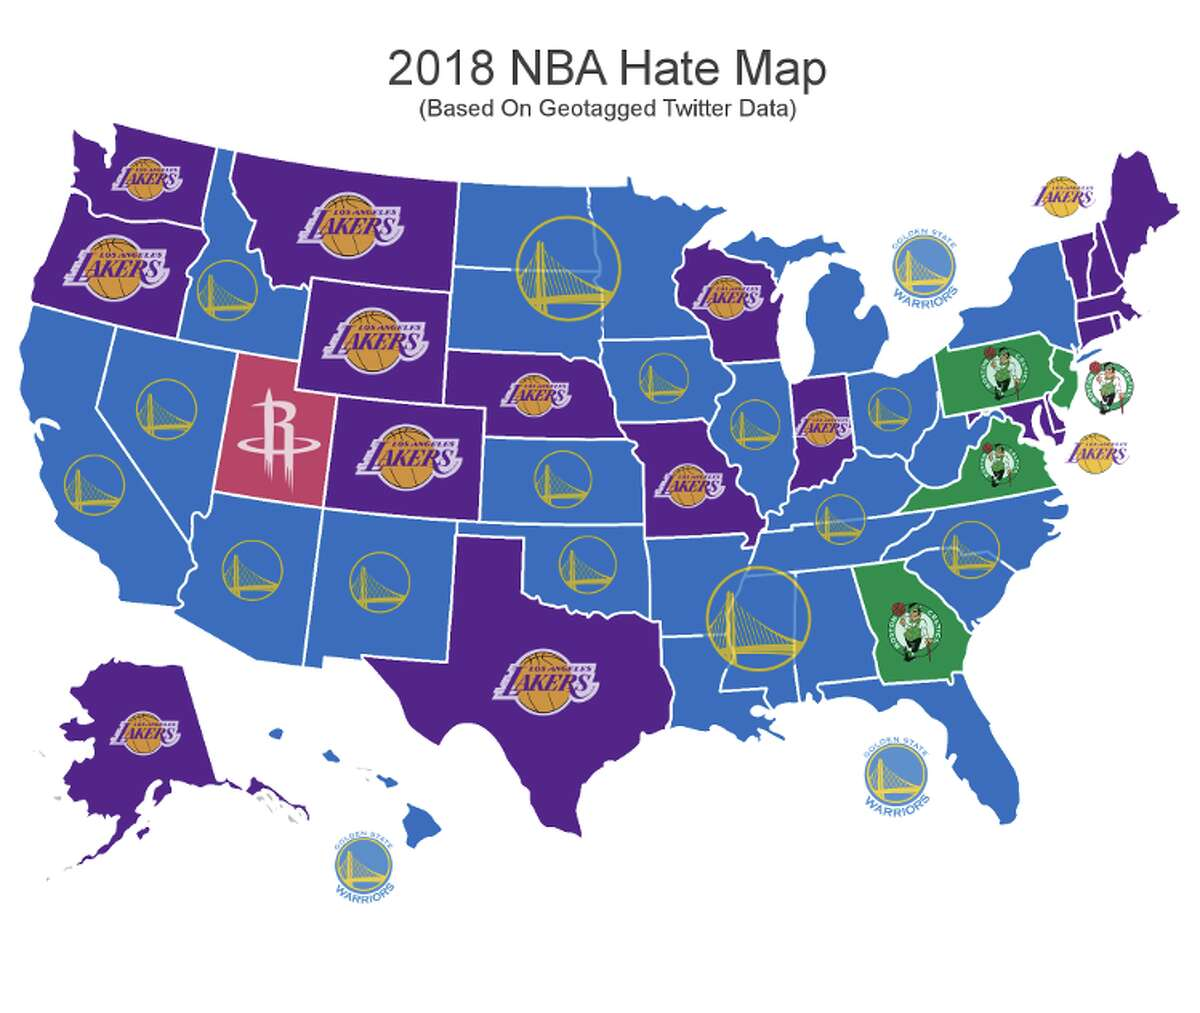 The most-hated NBA teams by state.